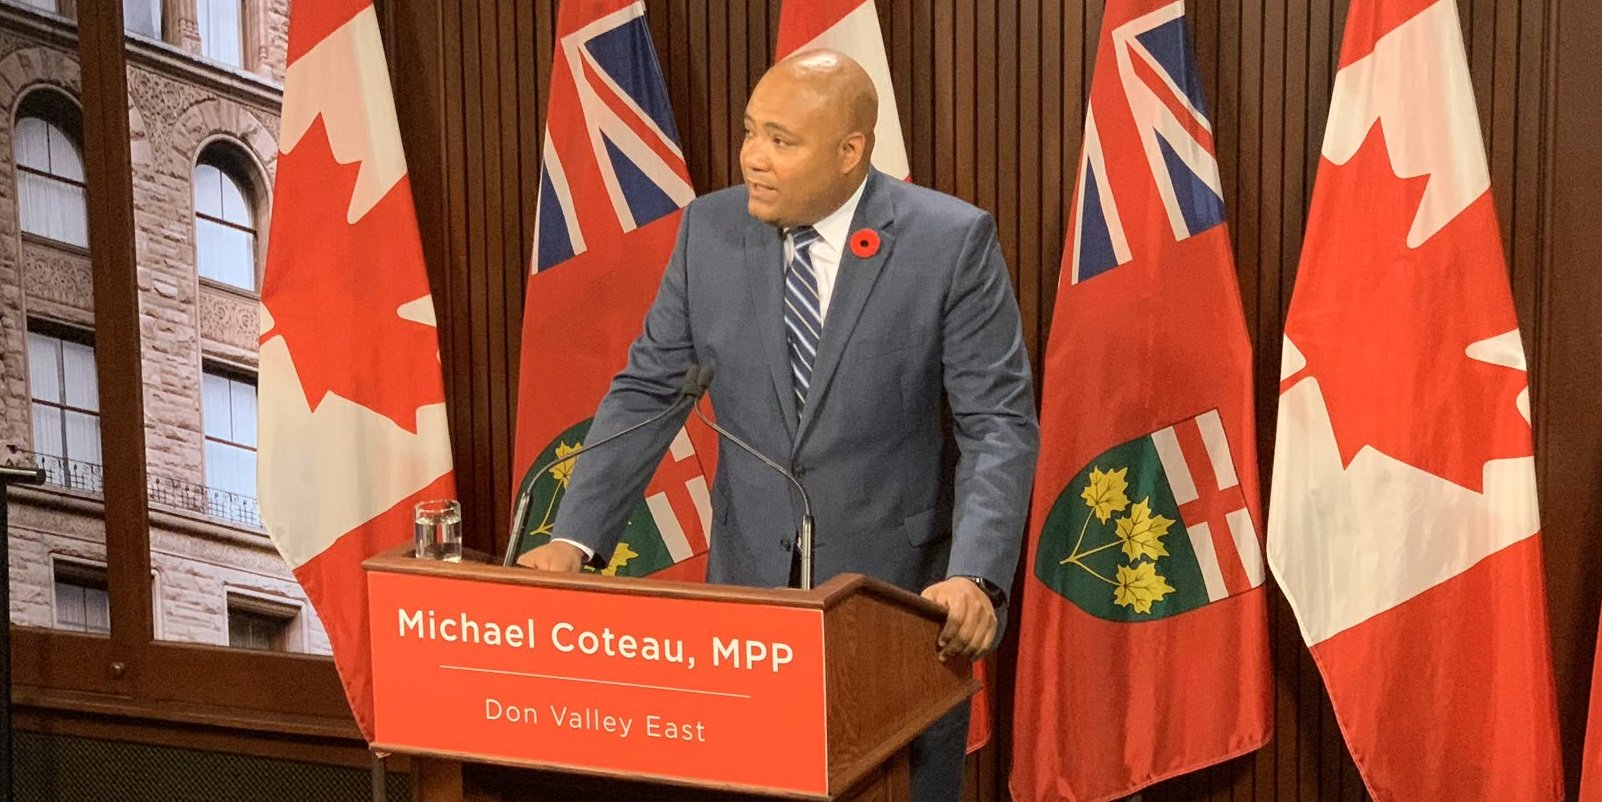 Ontario Liberal leadership candidate Coteau promises free public transit to fight climate change